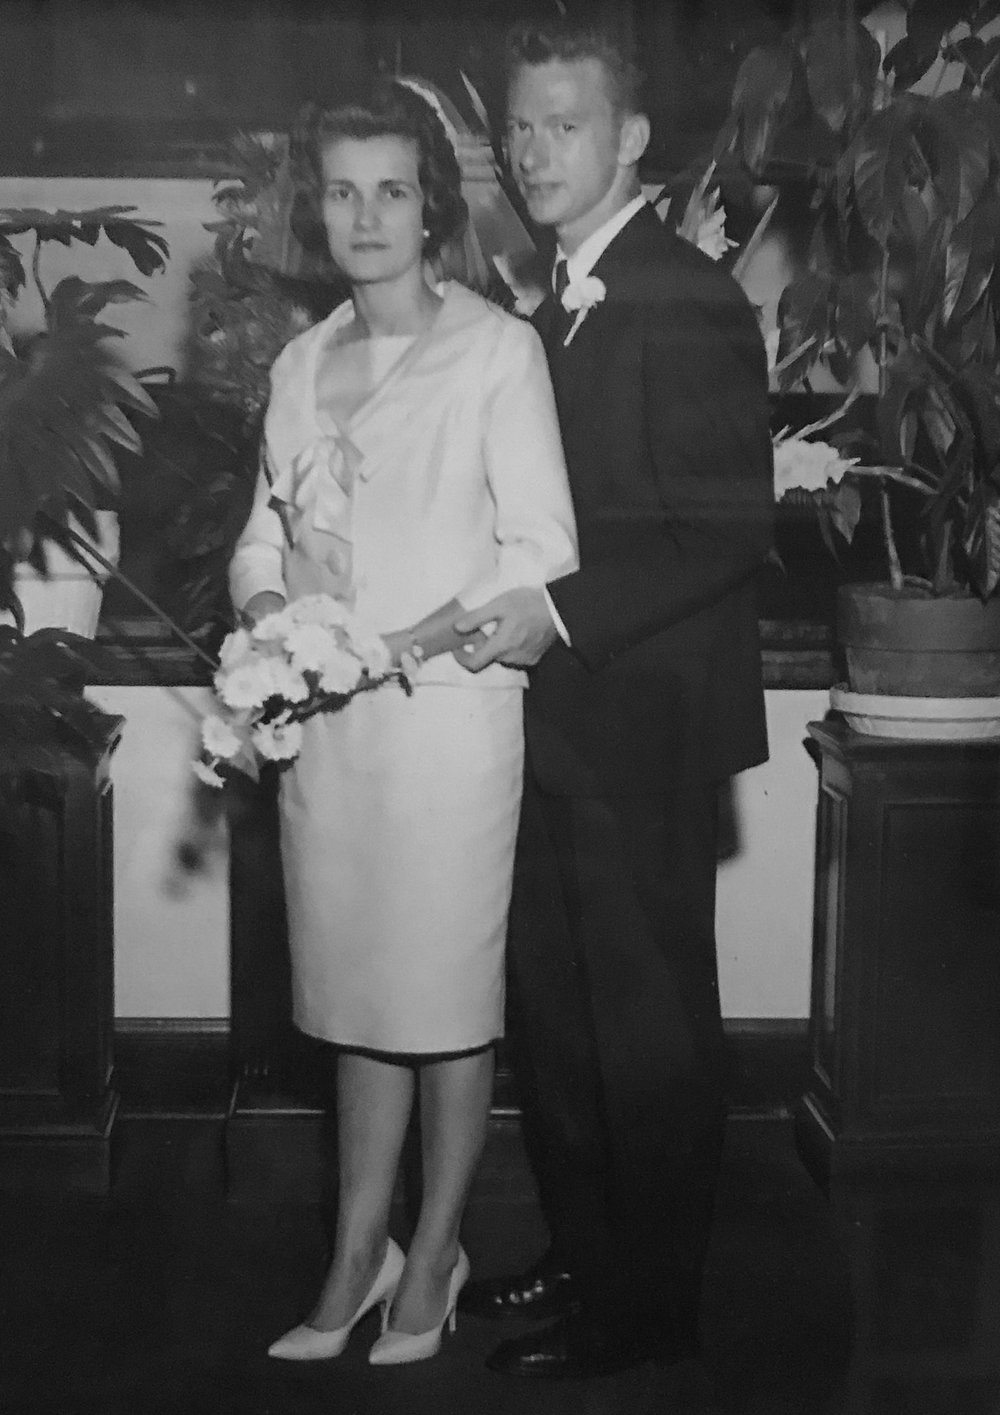 Meet my grandparents: George and Esther Cloud - Esther has been living with chronic pain and illness for decades and George has been by her side every step of the way, taking on the role of caregiver in more recent years.I began documenting their life together in October 2017 in an effort to memorialize their love through photographs. This desire to preserve their legacy for my family's current and future generations became a personal project spanning the course of several months.